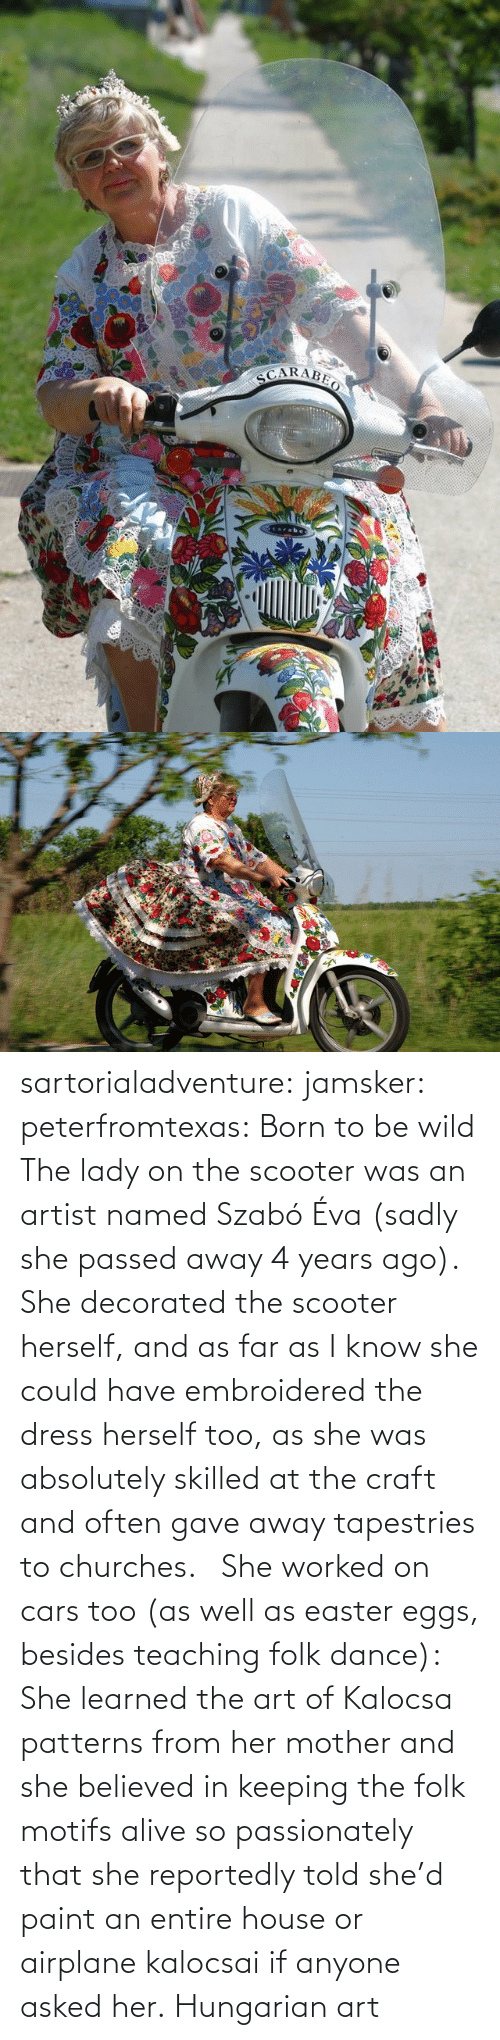 Easter: sartorialadventure: jamsker:  peterfromtexas: Born to be wild The lady on the scooter was an artist named Szabó Éva (sadly she passed away 4 years ago). She decorated the scooter herself, and as far as I know she could have embroidered the dress herself too, as she was absolutely skilled at the craft and often gave away tapestries to churches.   She worked on cars too (as well as easter eggs, besides teaching folk dance): She learned the art of Kalocsa patterns from her mother and she believed in keeping the folk motifs alive so passionately that she reportedly told she'd paint an entire house or airplane kalocsai if anyone asked her.  Hungarian art